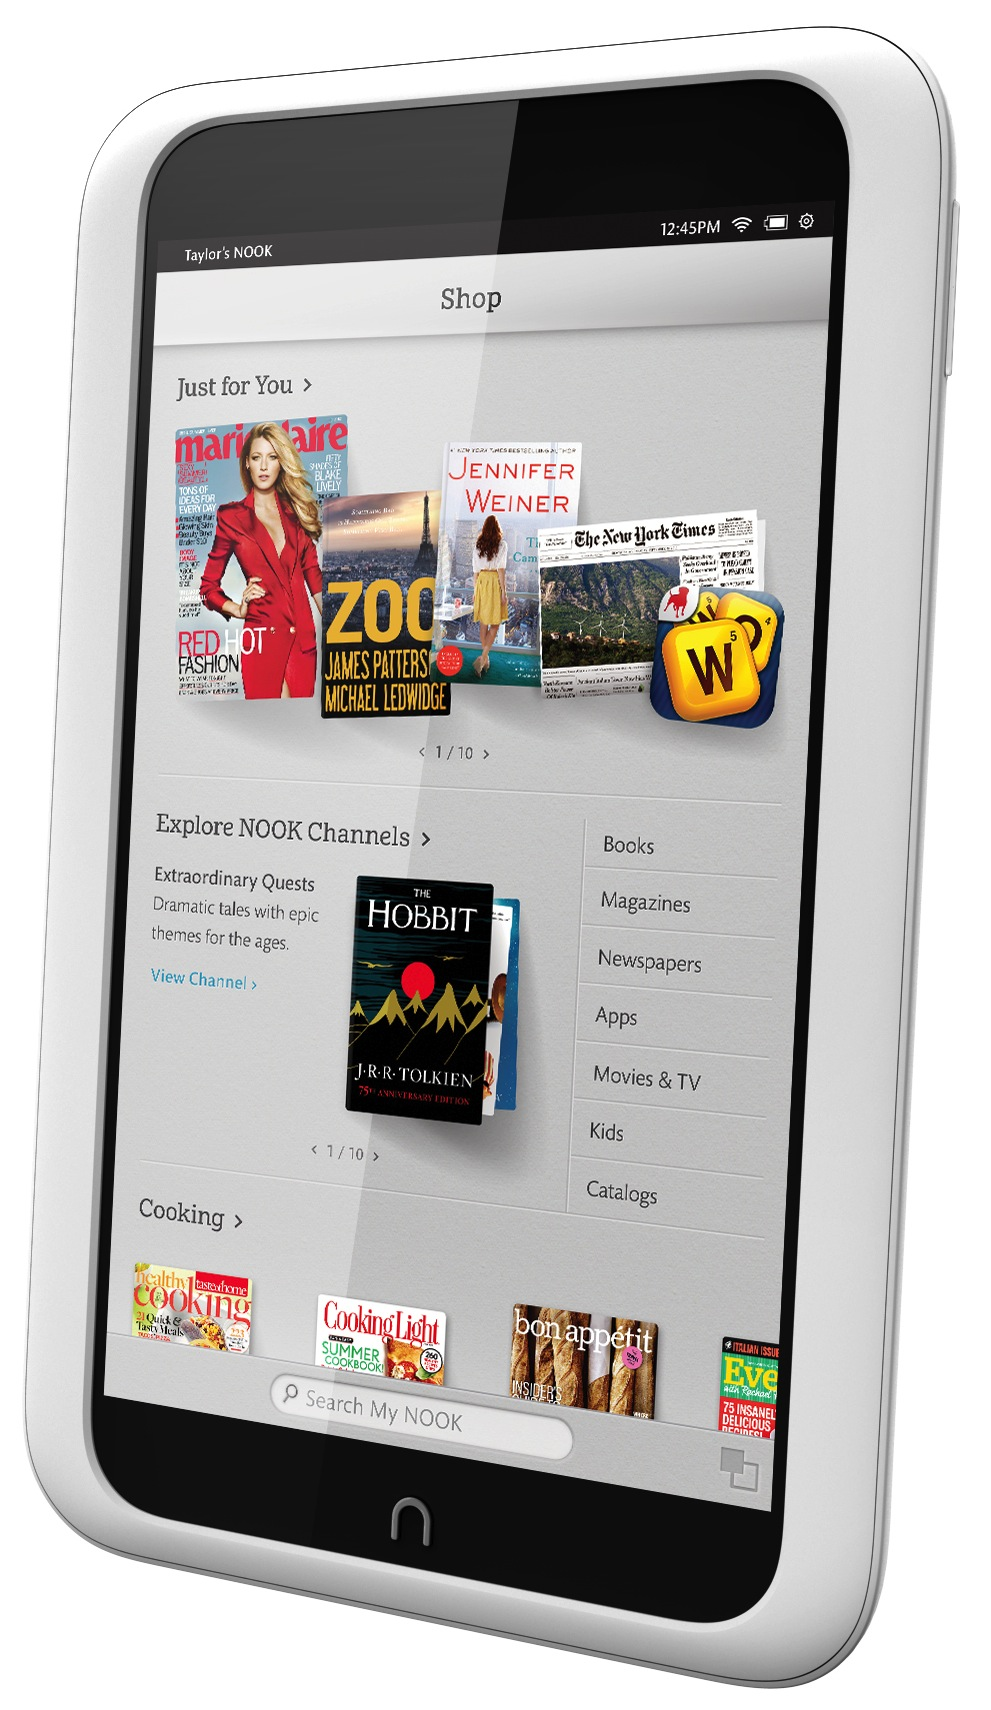 Barnes & Noble Nook HD shopping